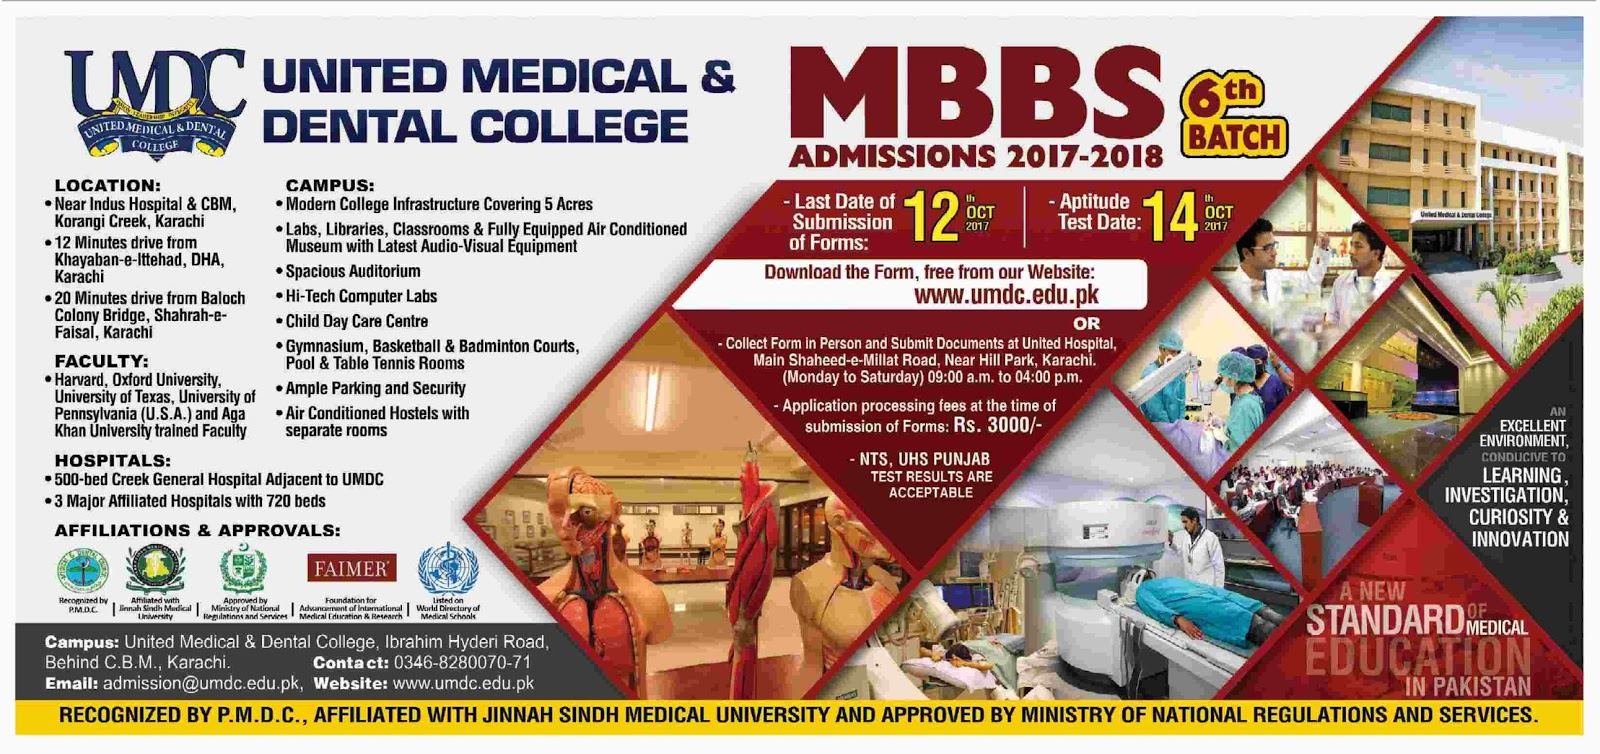 Admissions Open in United Medical and Dental College Karachi - 2017